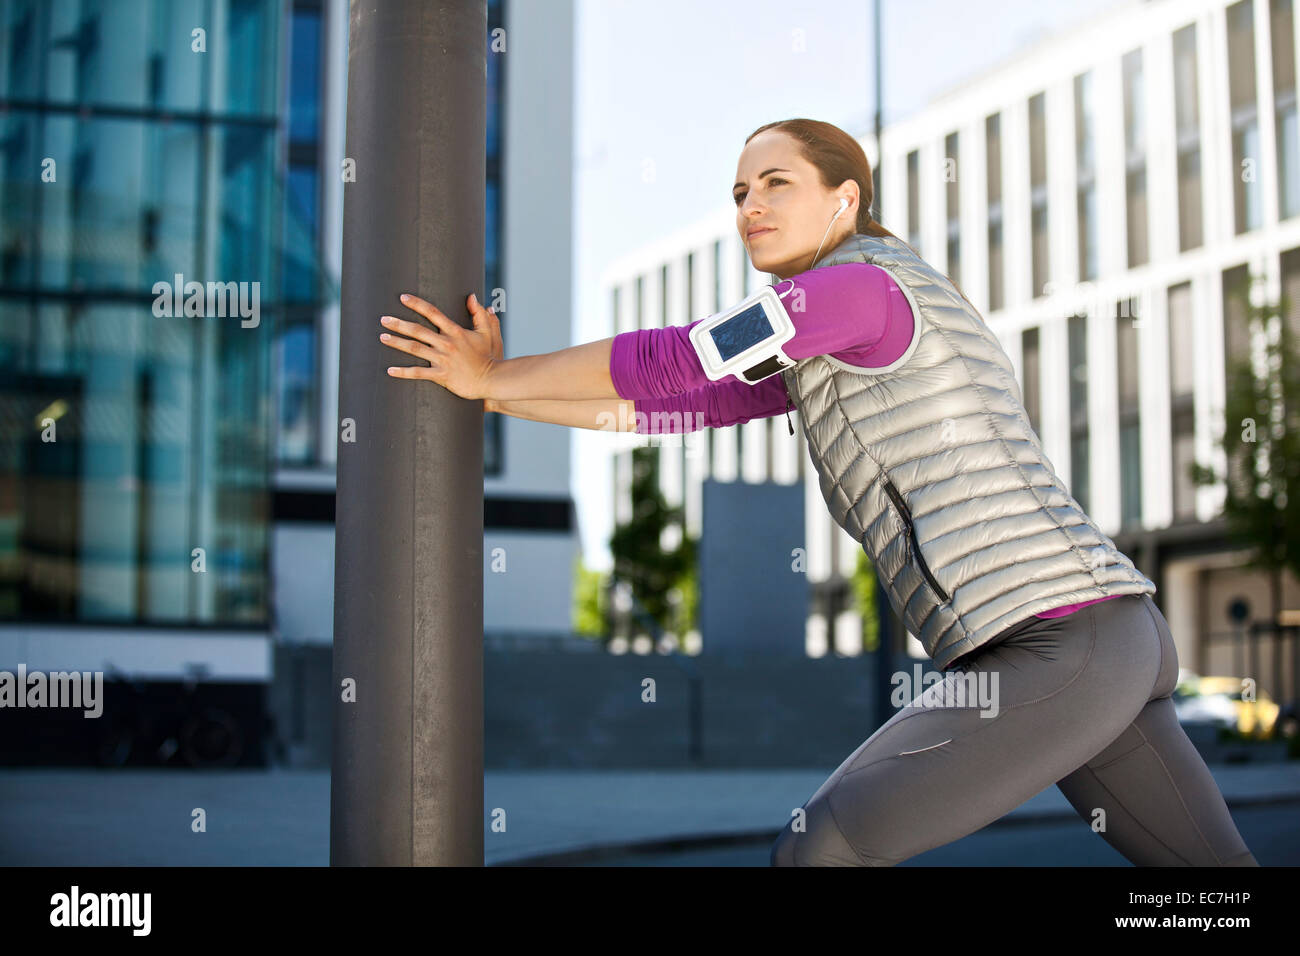 Athletic brunette woman outdoors - Stock Image